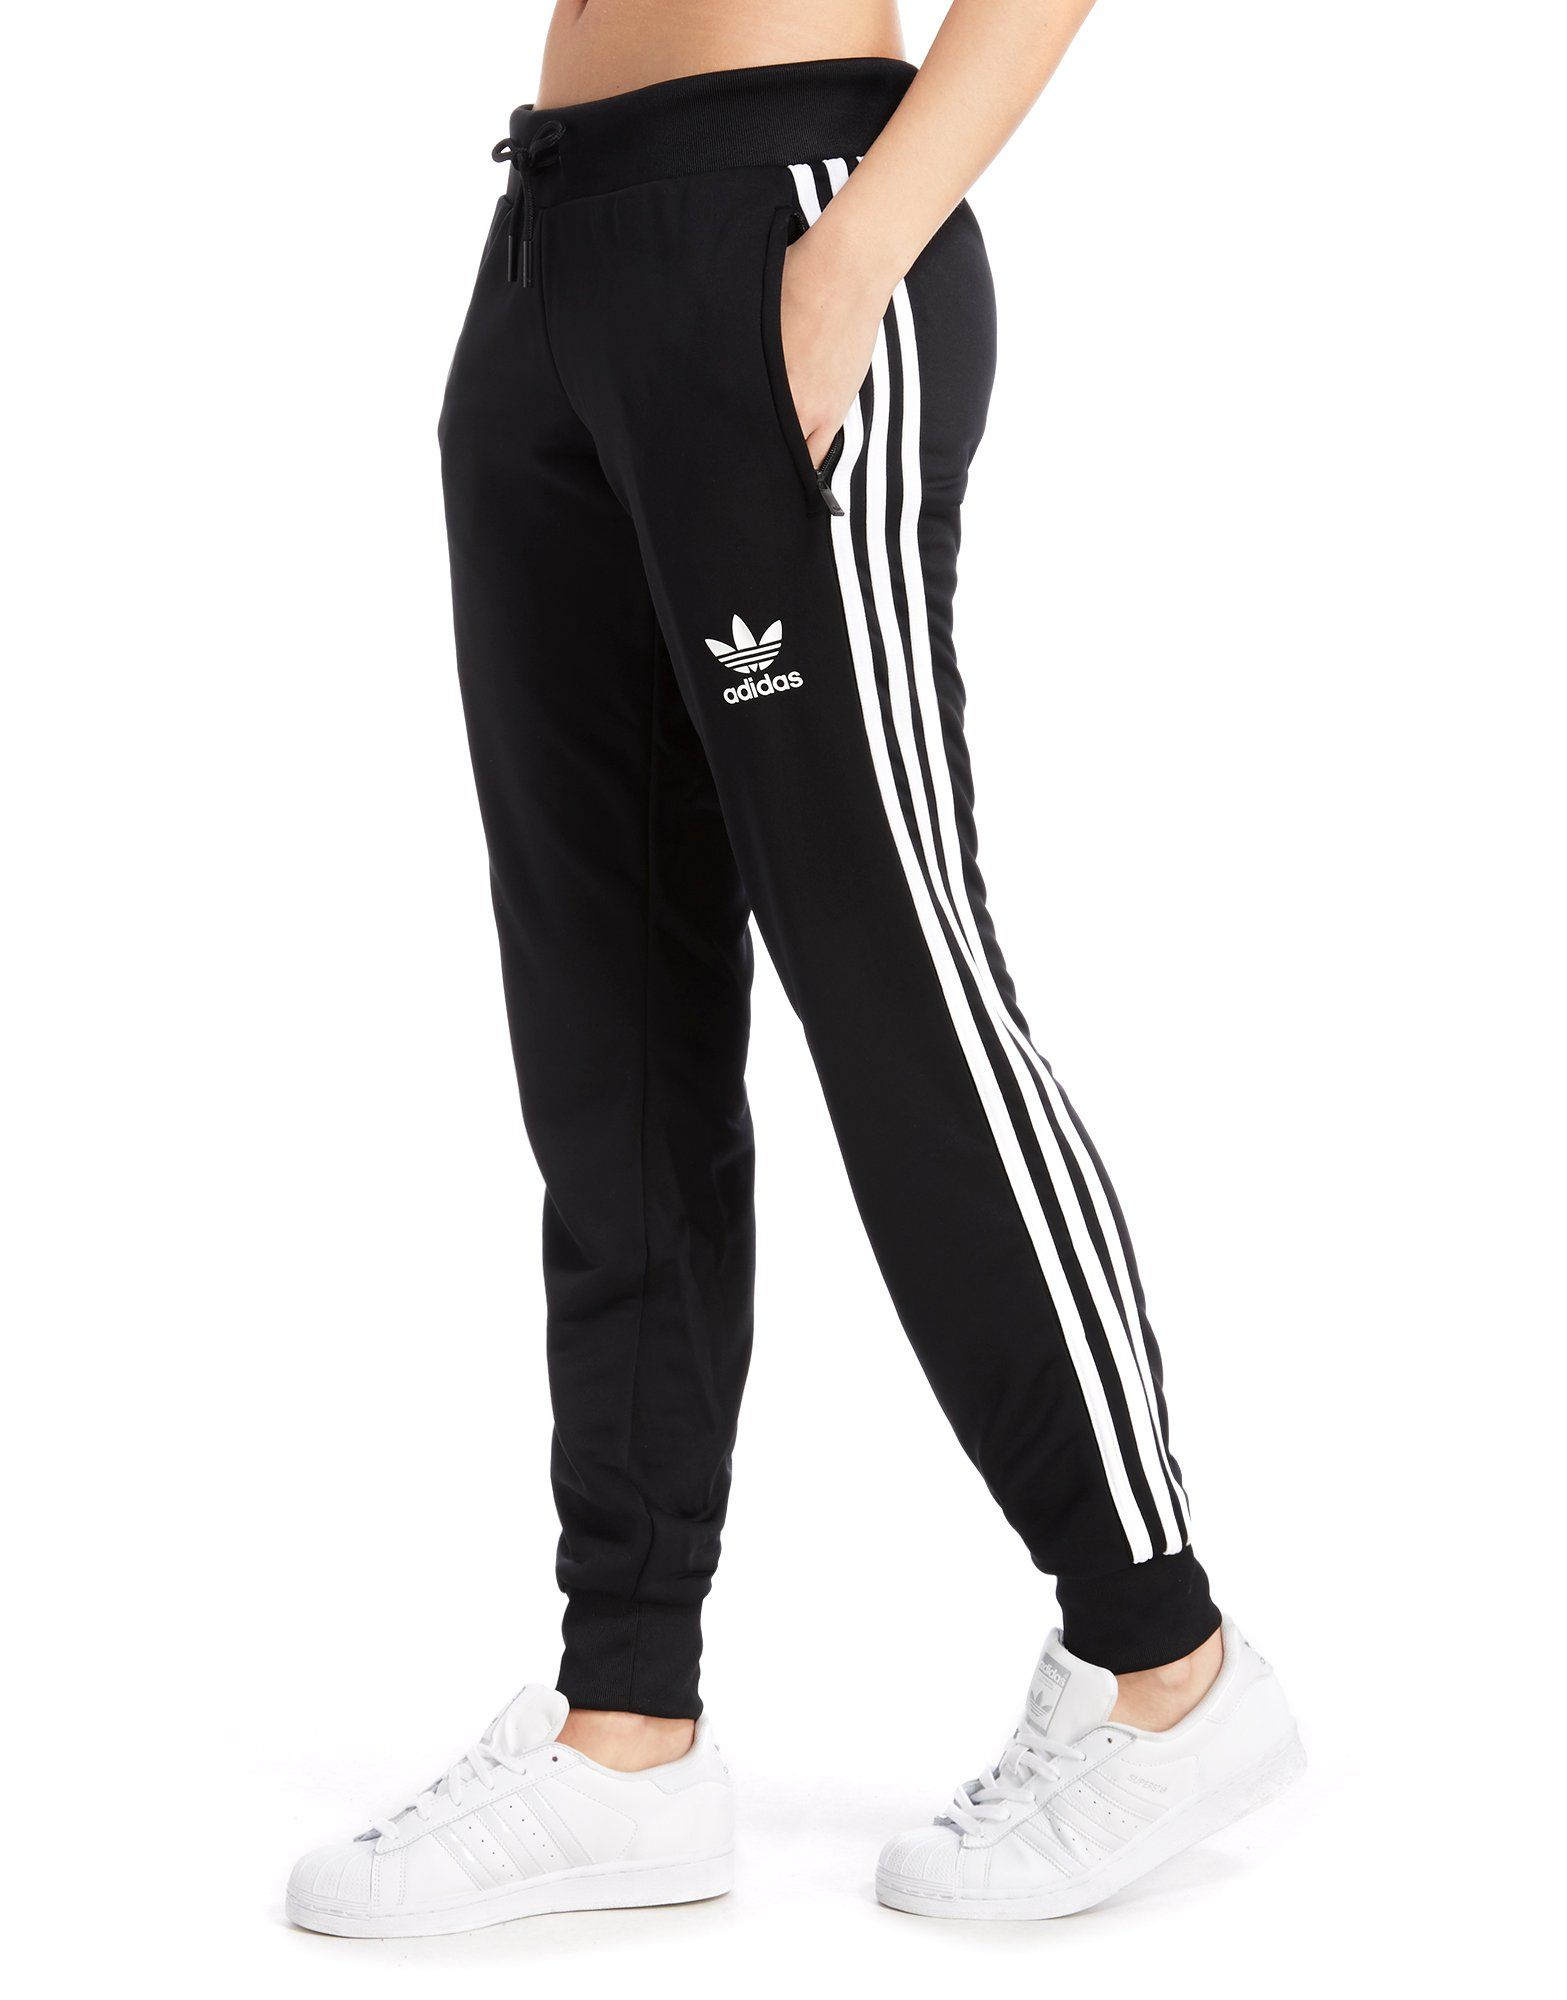 Original  Outfits Cute Outfits Womens Fashion Adidas Clothing Adidas Outfit